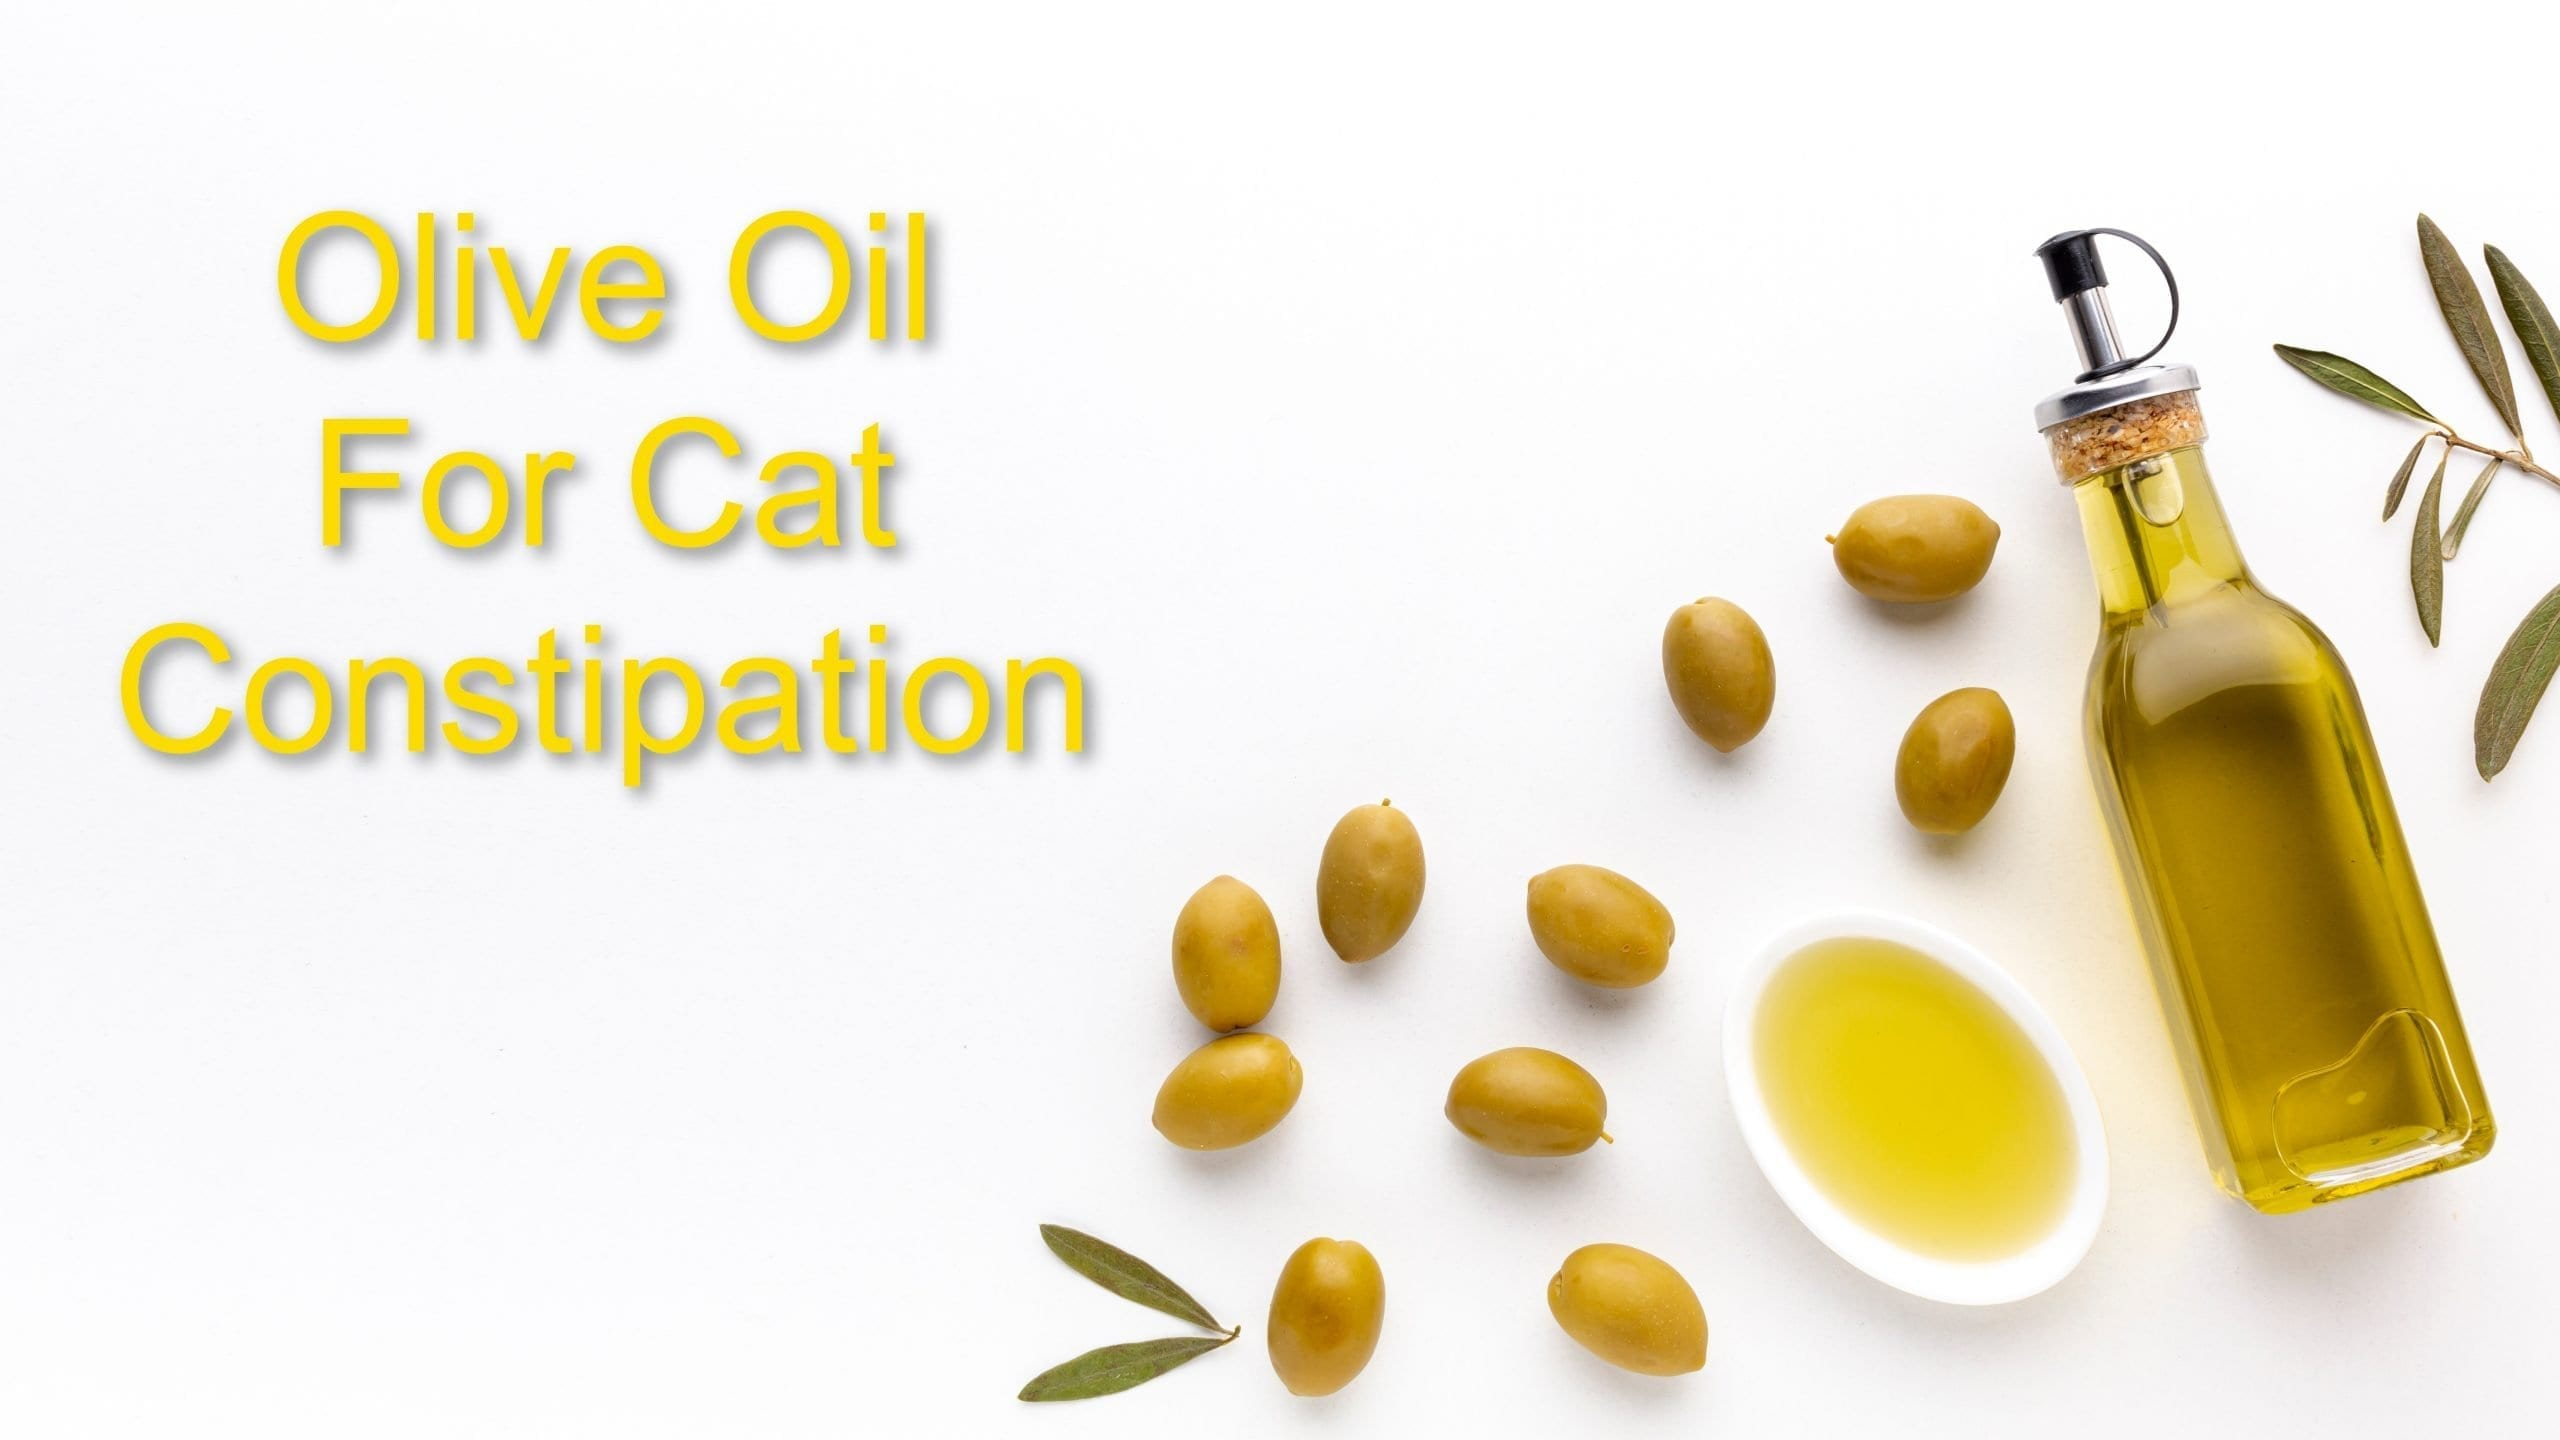 Olive Oil For Cat Constipation